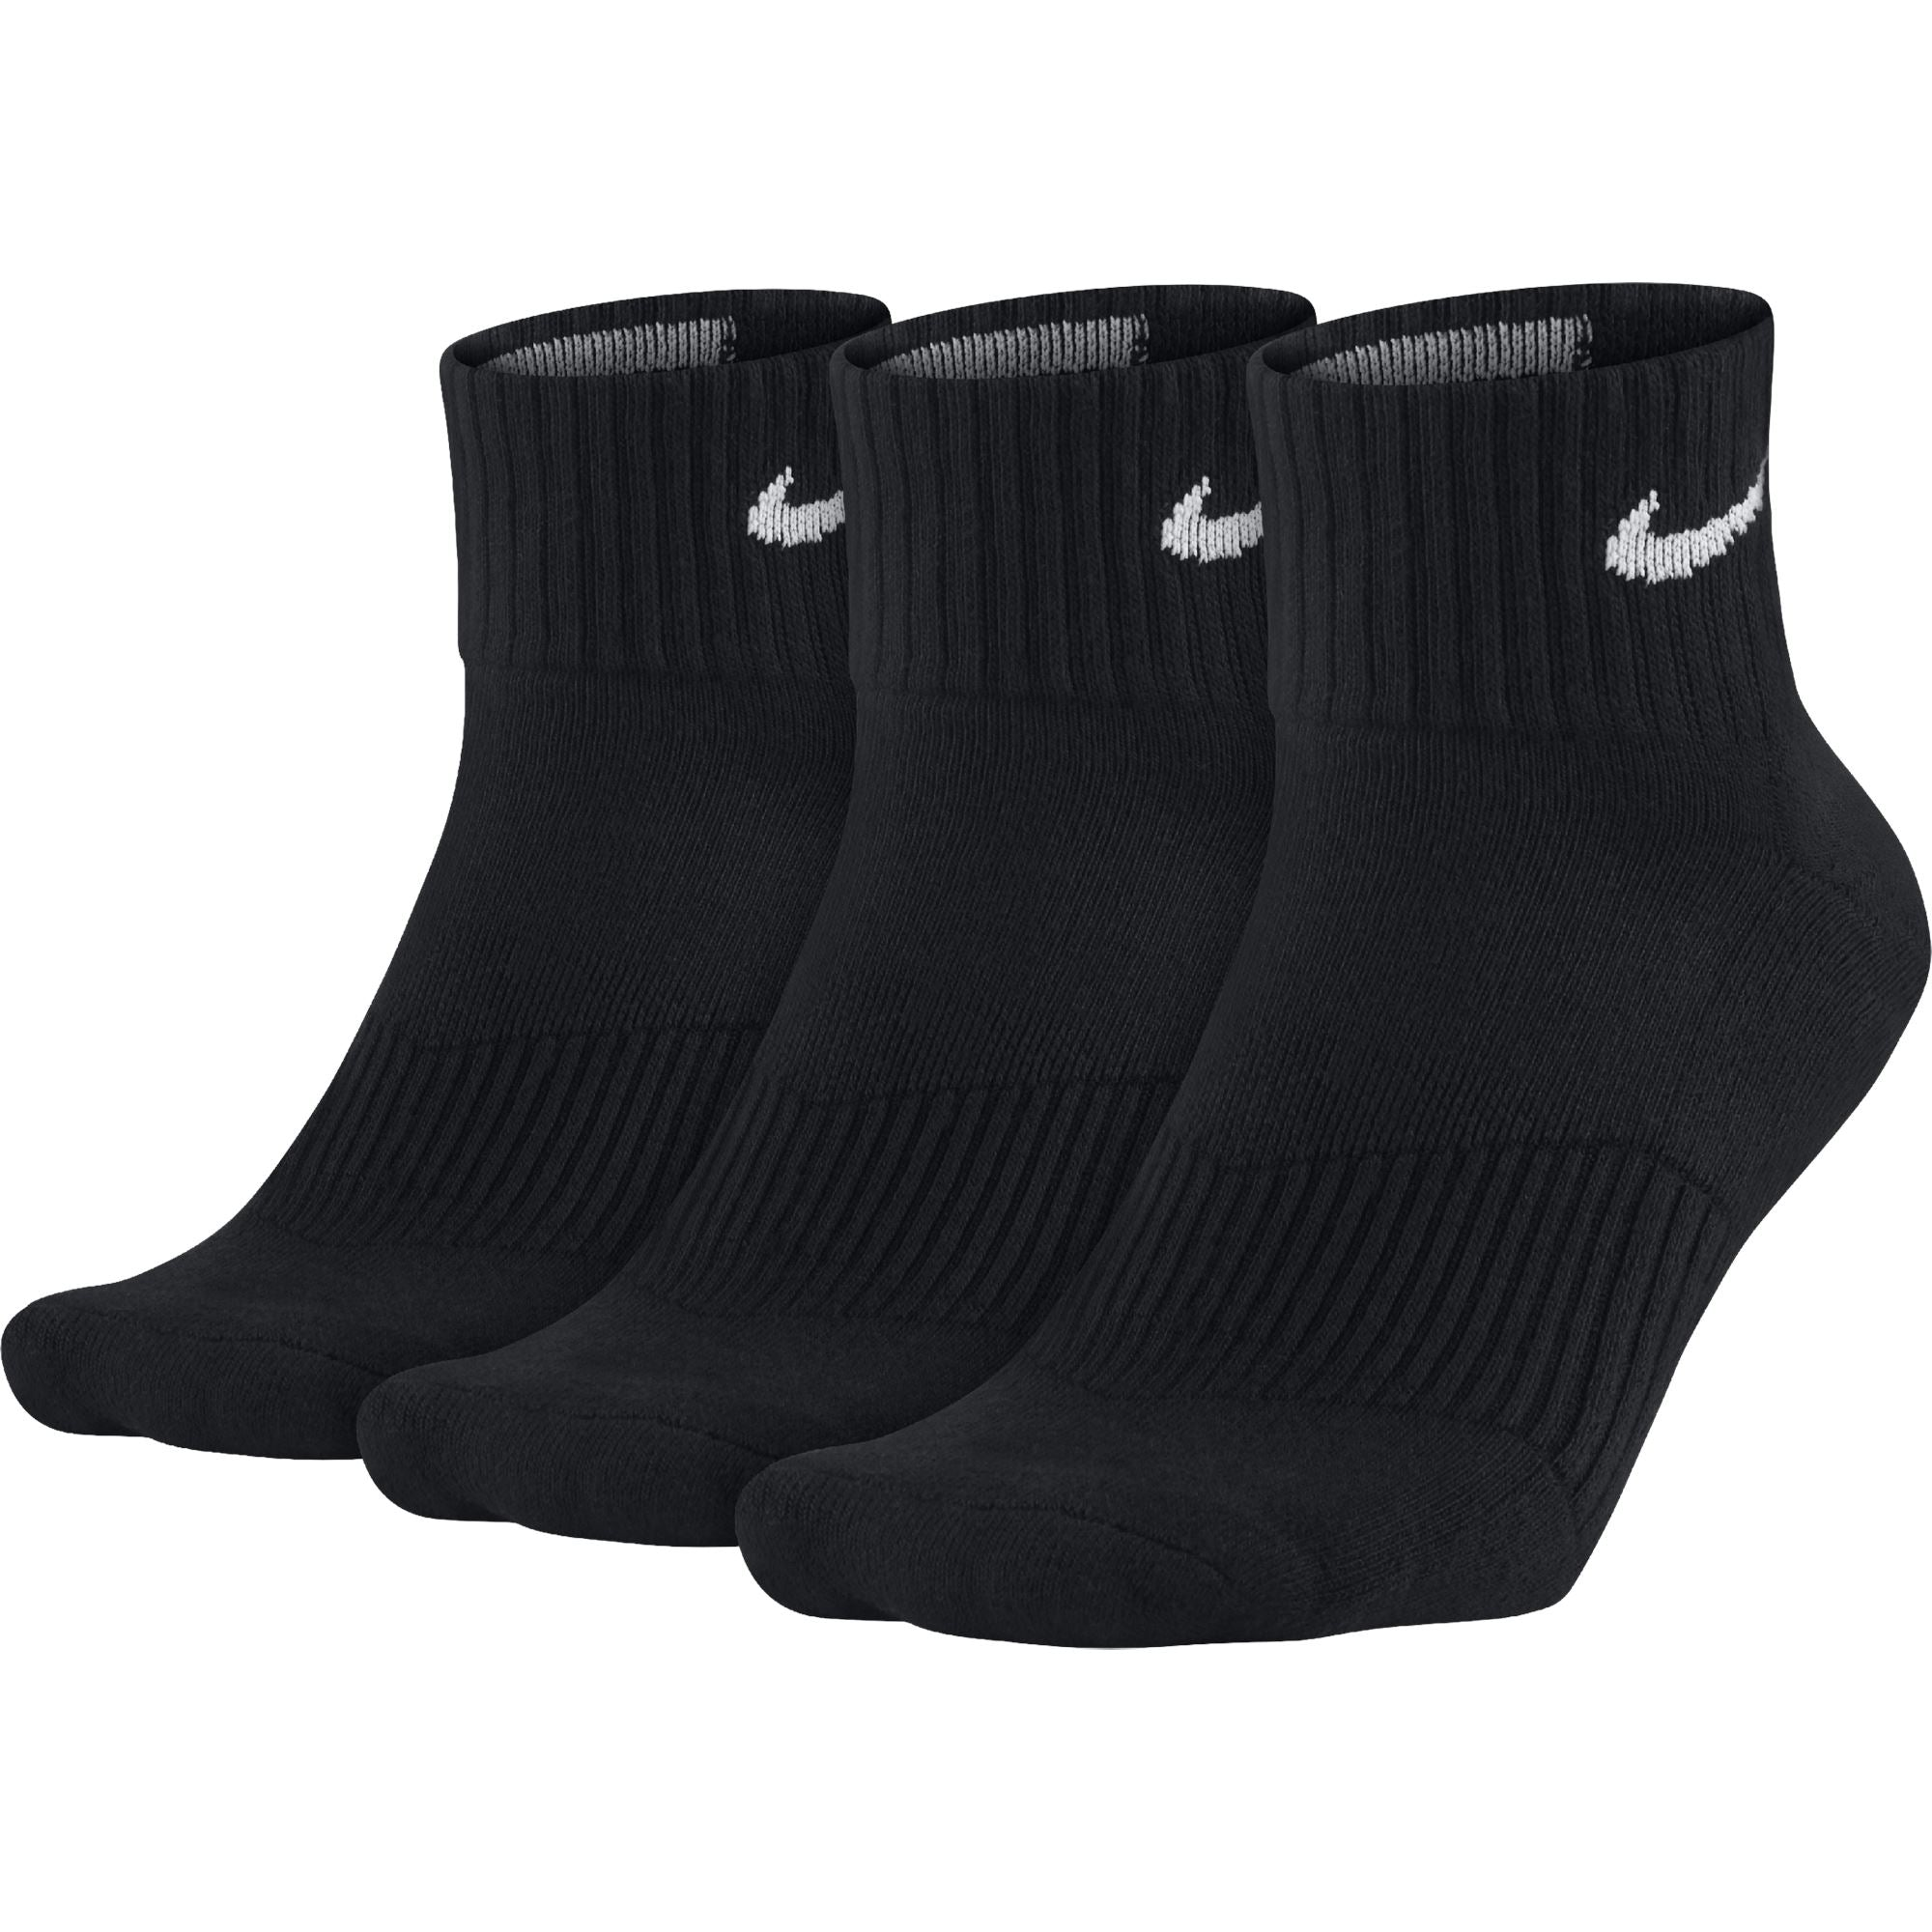 Nike Perfect Cushion Quarter Training Sock (3 Pair) - Black/White Q3NIKE Nike